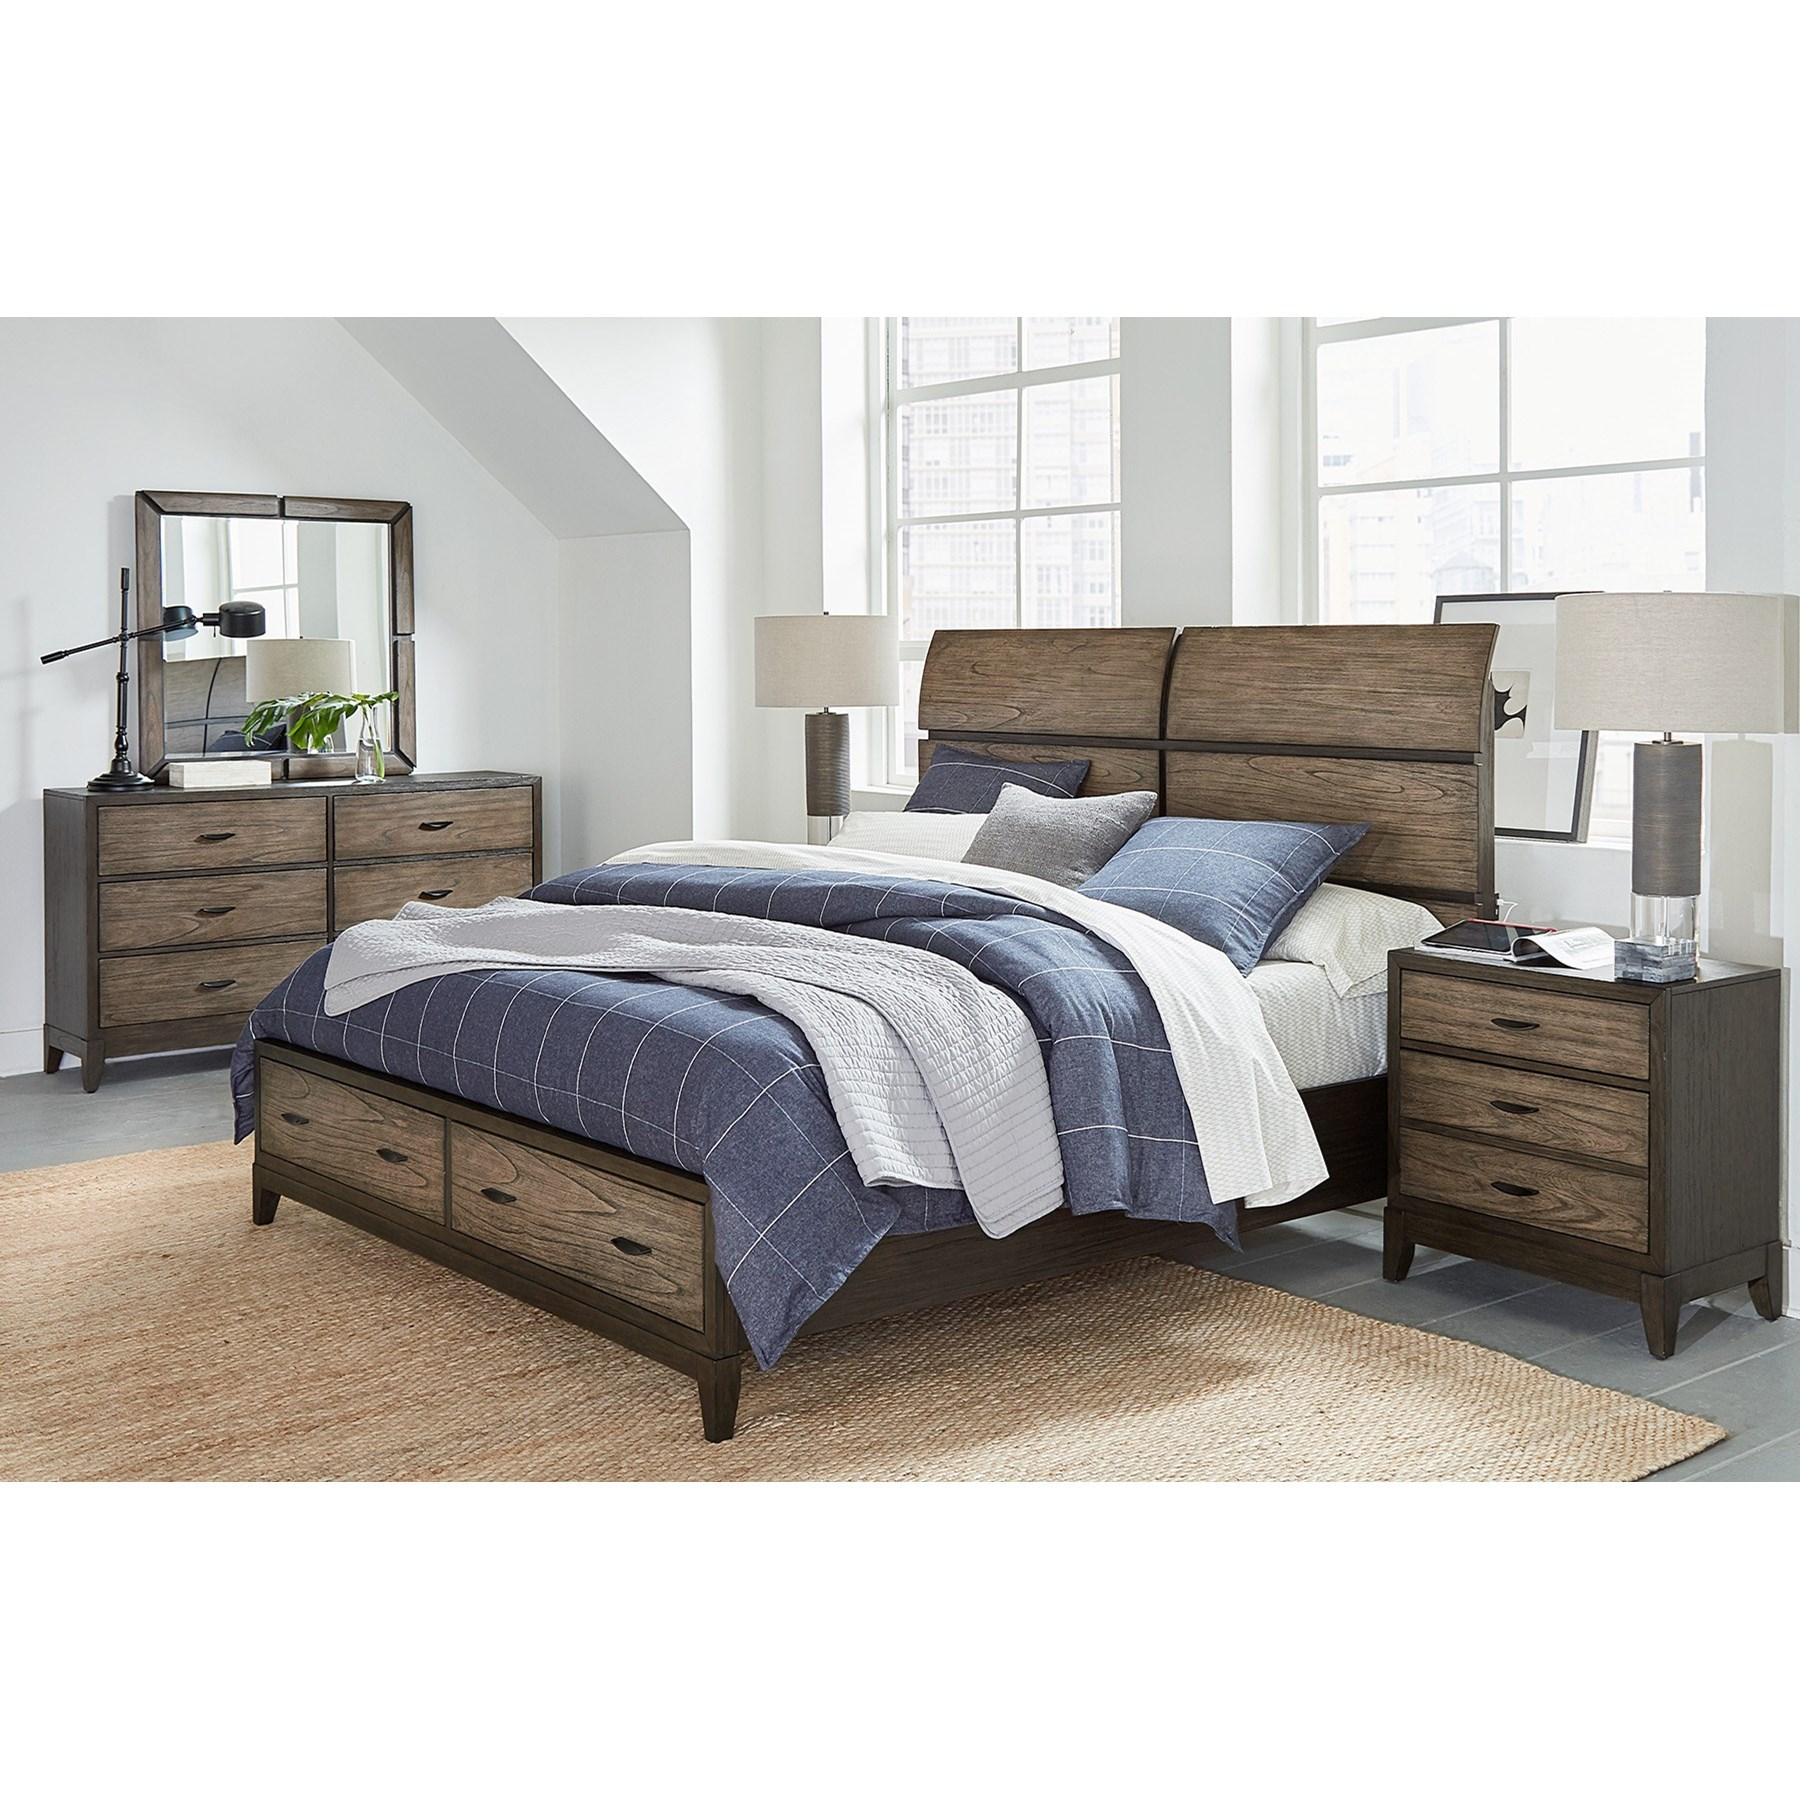 Westlake Queen Bedroom Group by Aspenhome at Fashion Furniture